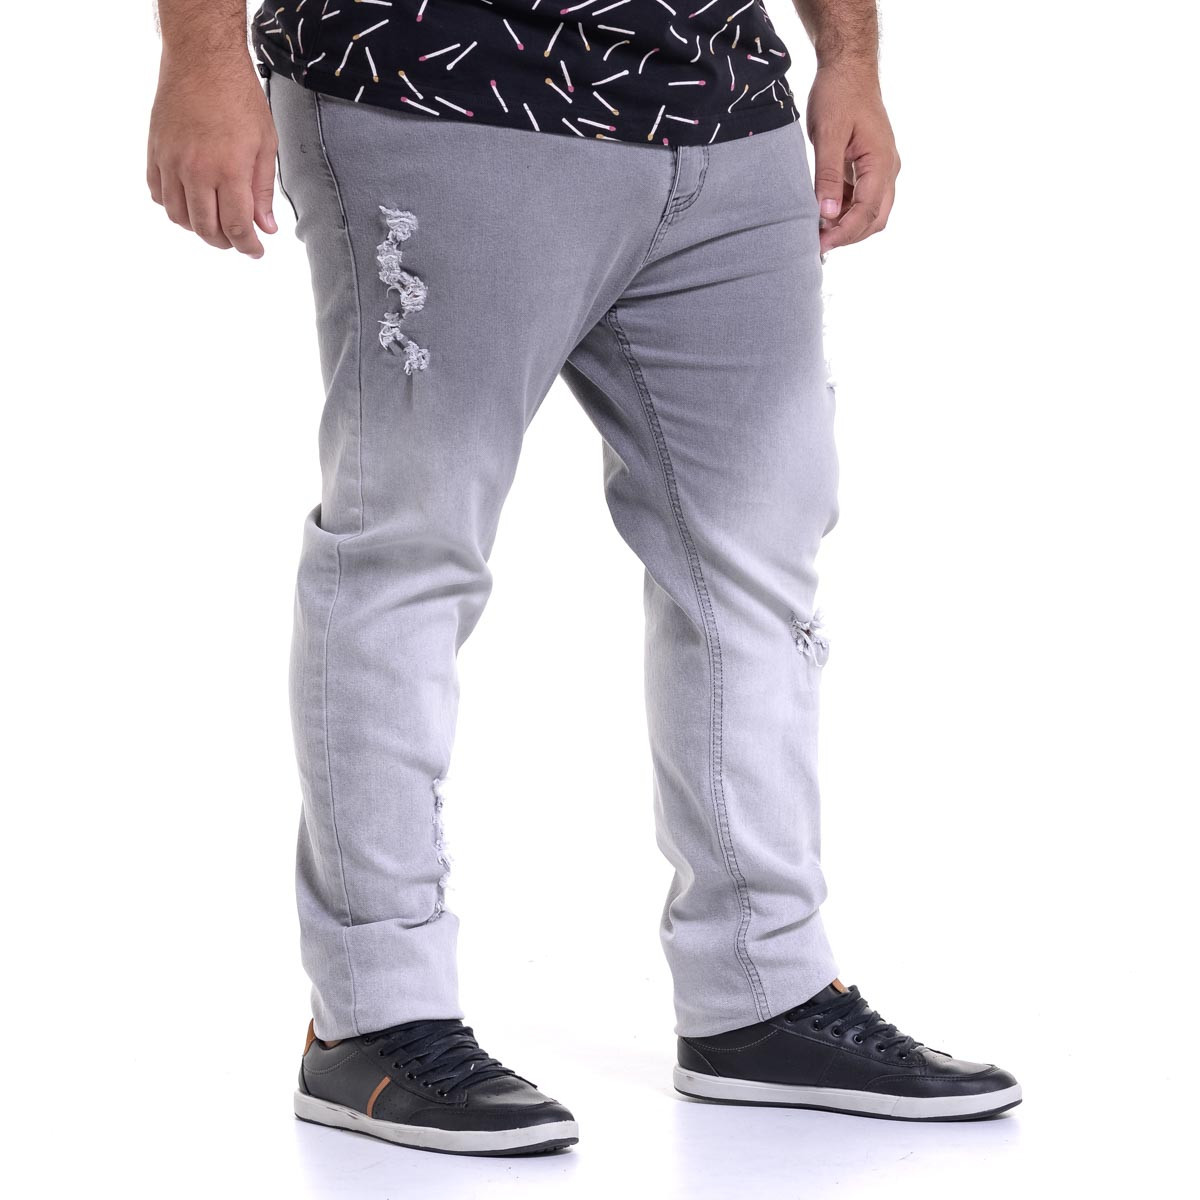 Calça Jeans Plus Size Masculina Destroyed Degrade Black